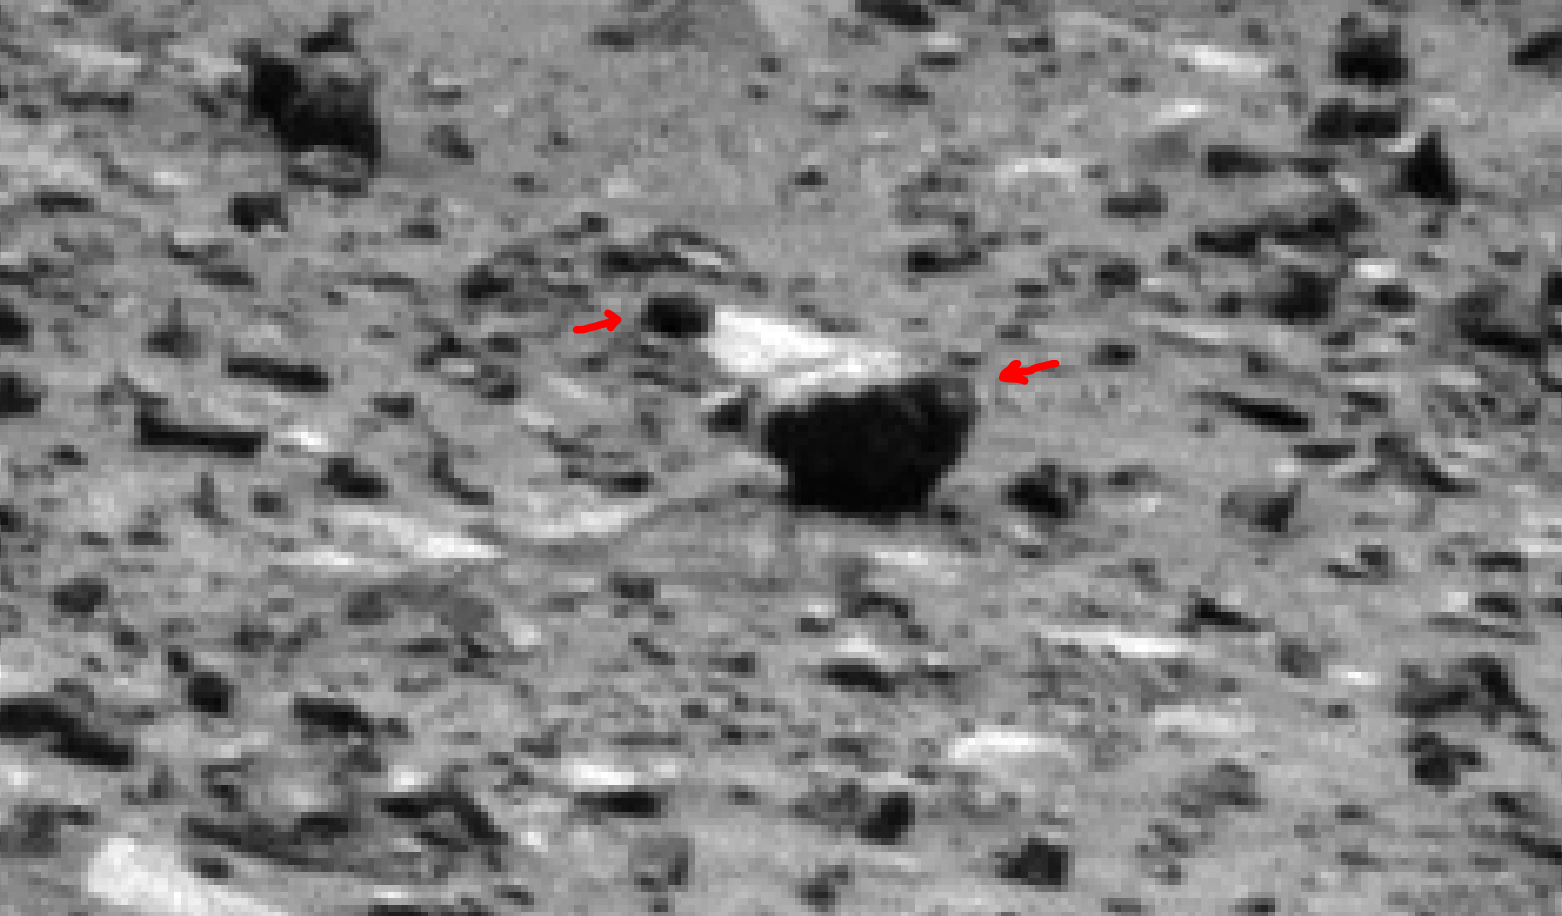 mars sol 1400 anomaly artifacts 4 was life on mars